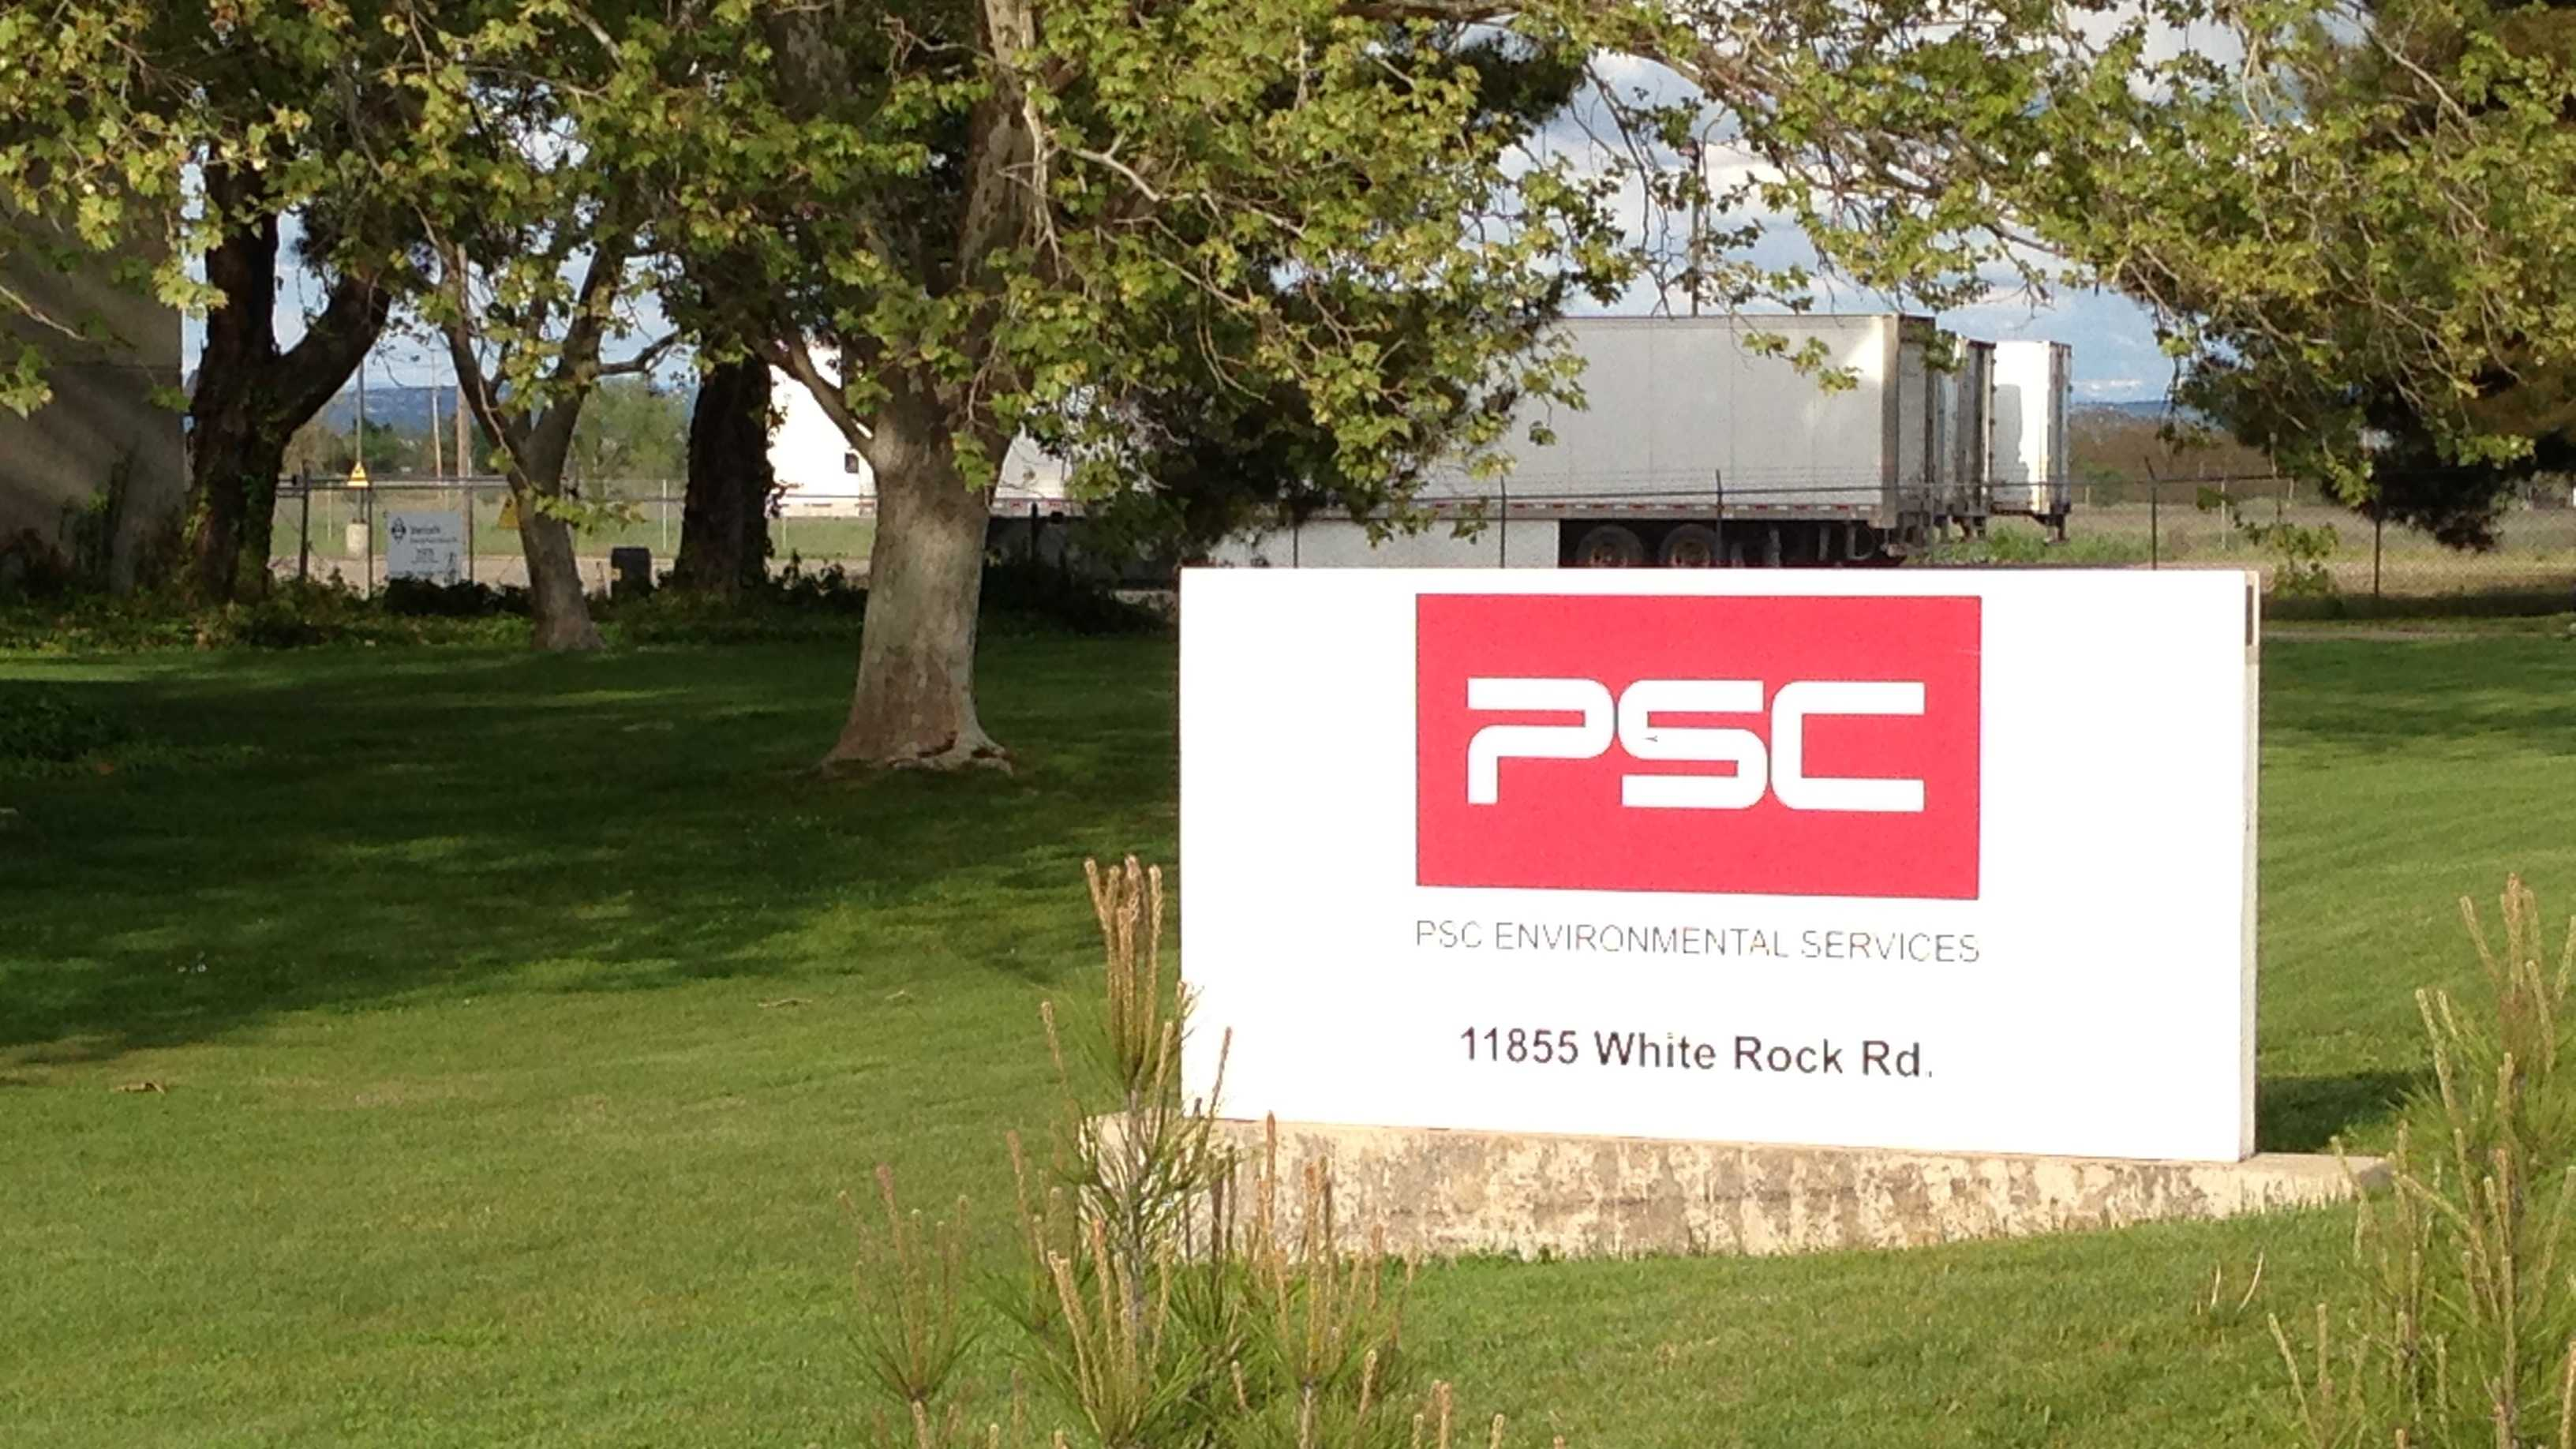 PSC Environmental Services in Rancho Cordova has been ordered closed by the state over safety concerns.